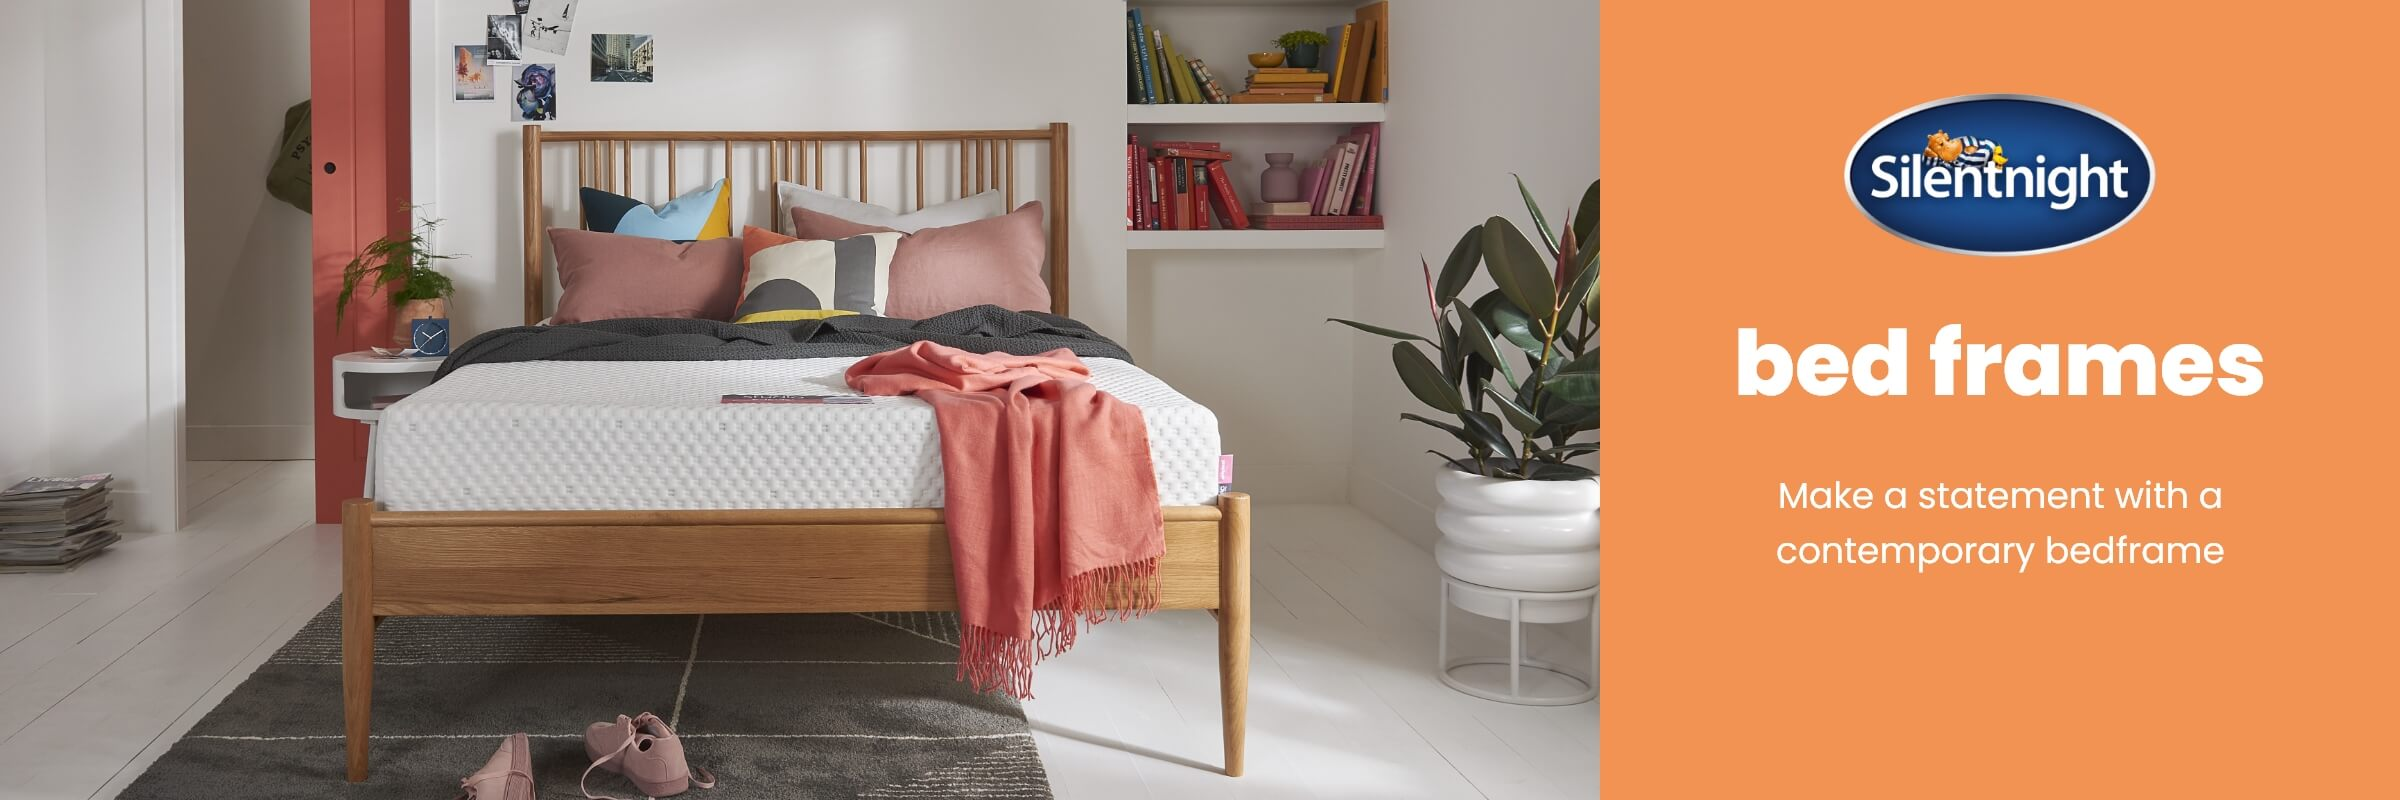 Silentnight Bed Frames at MattressOnline. The Secret to a Great Night's Sleep